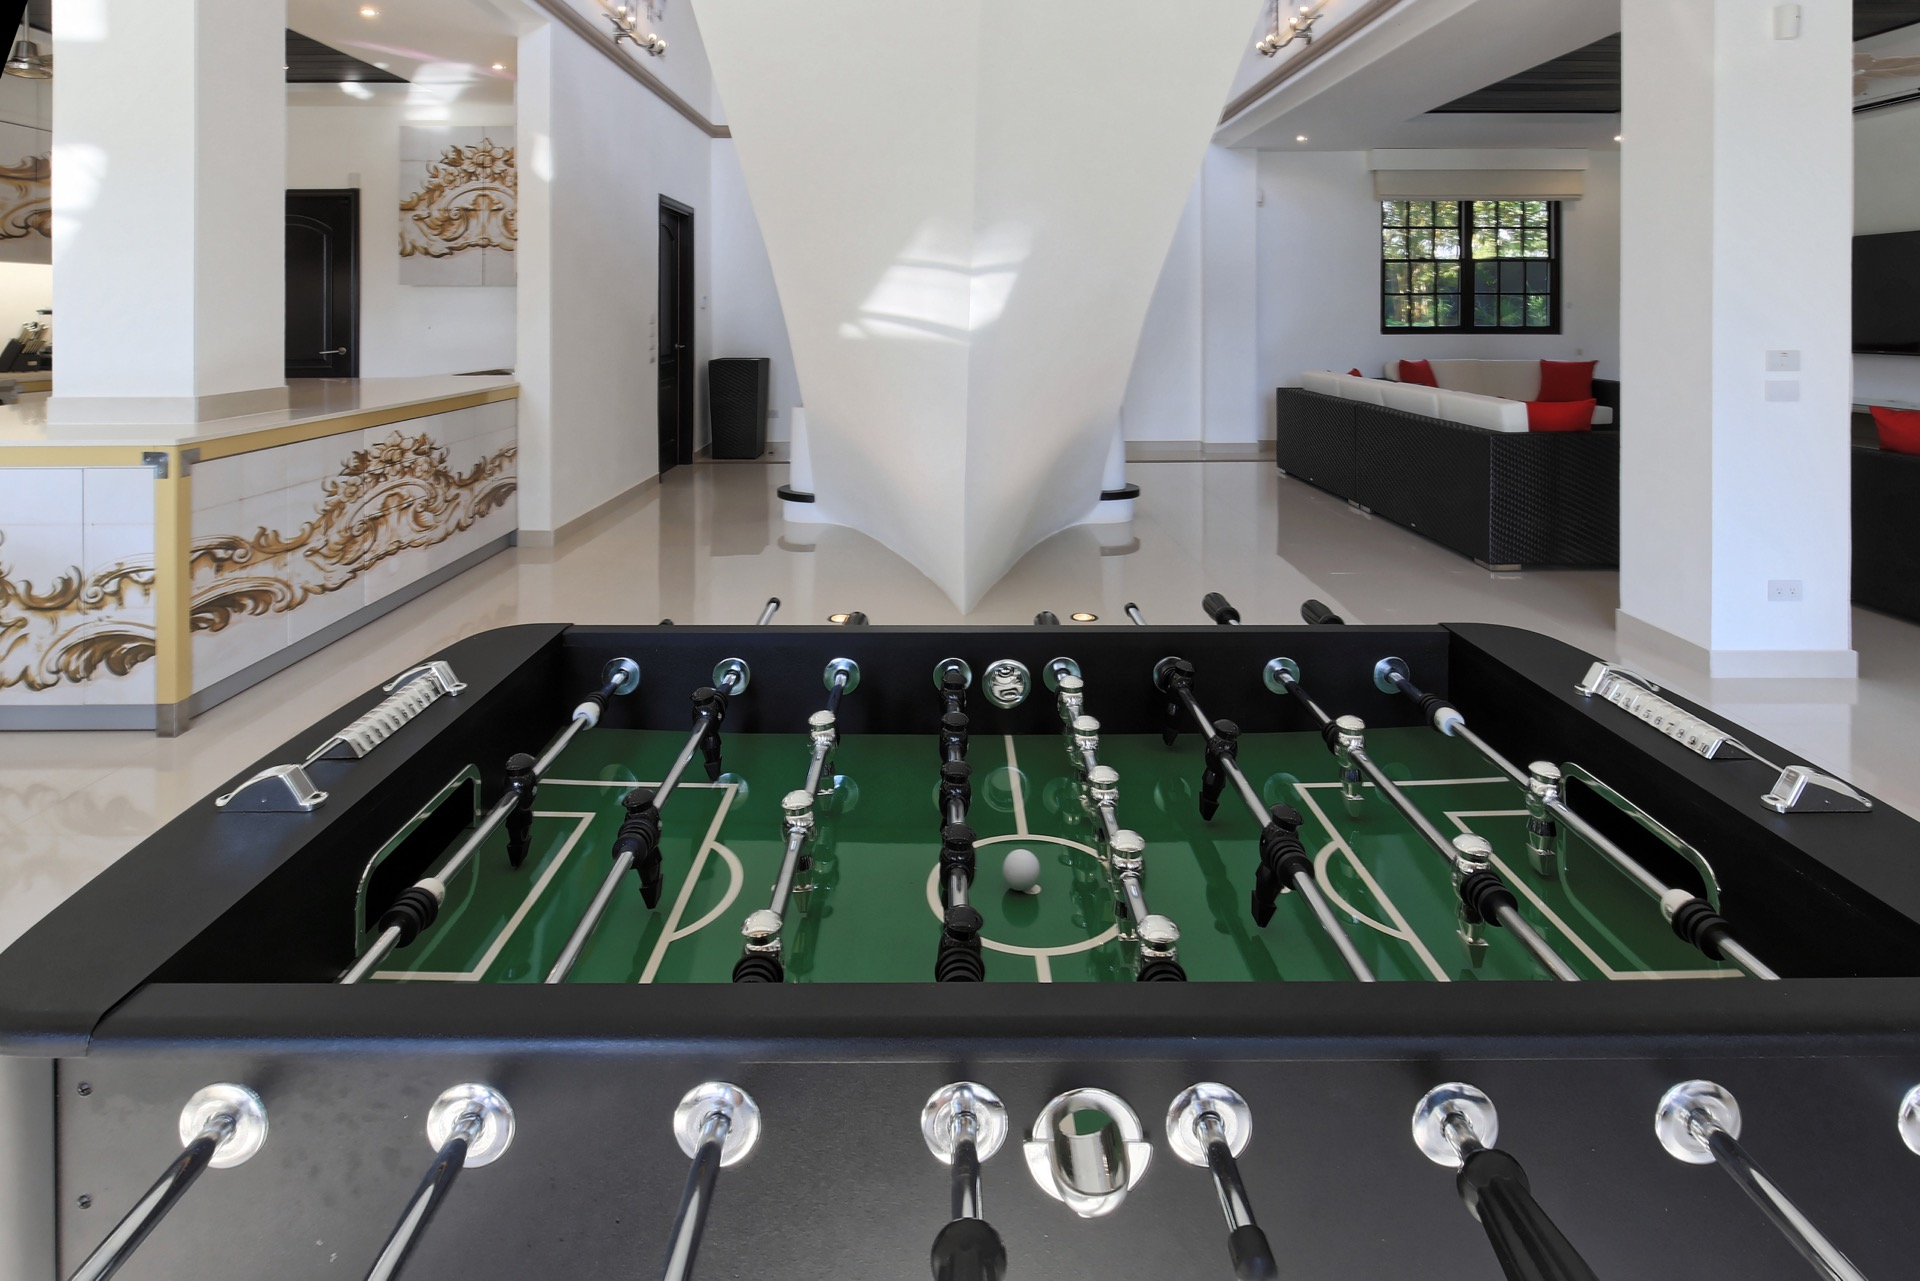 Enjoy some time off with the good ol' foosball